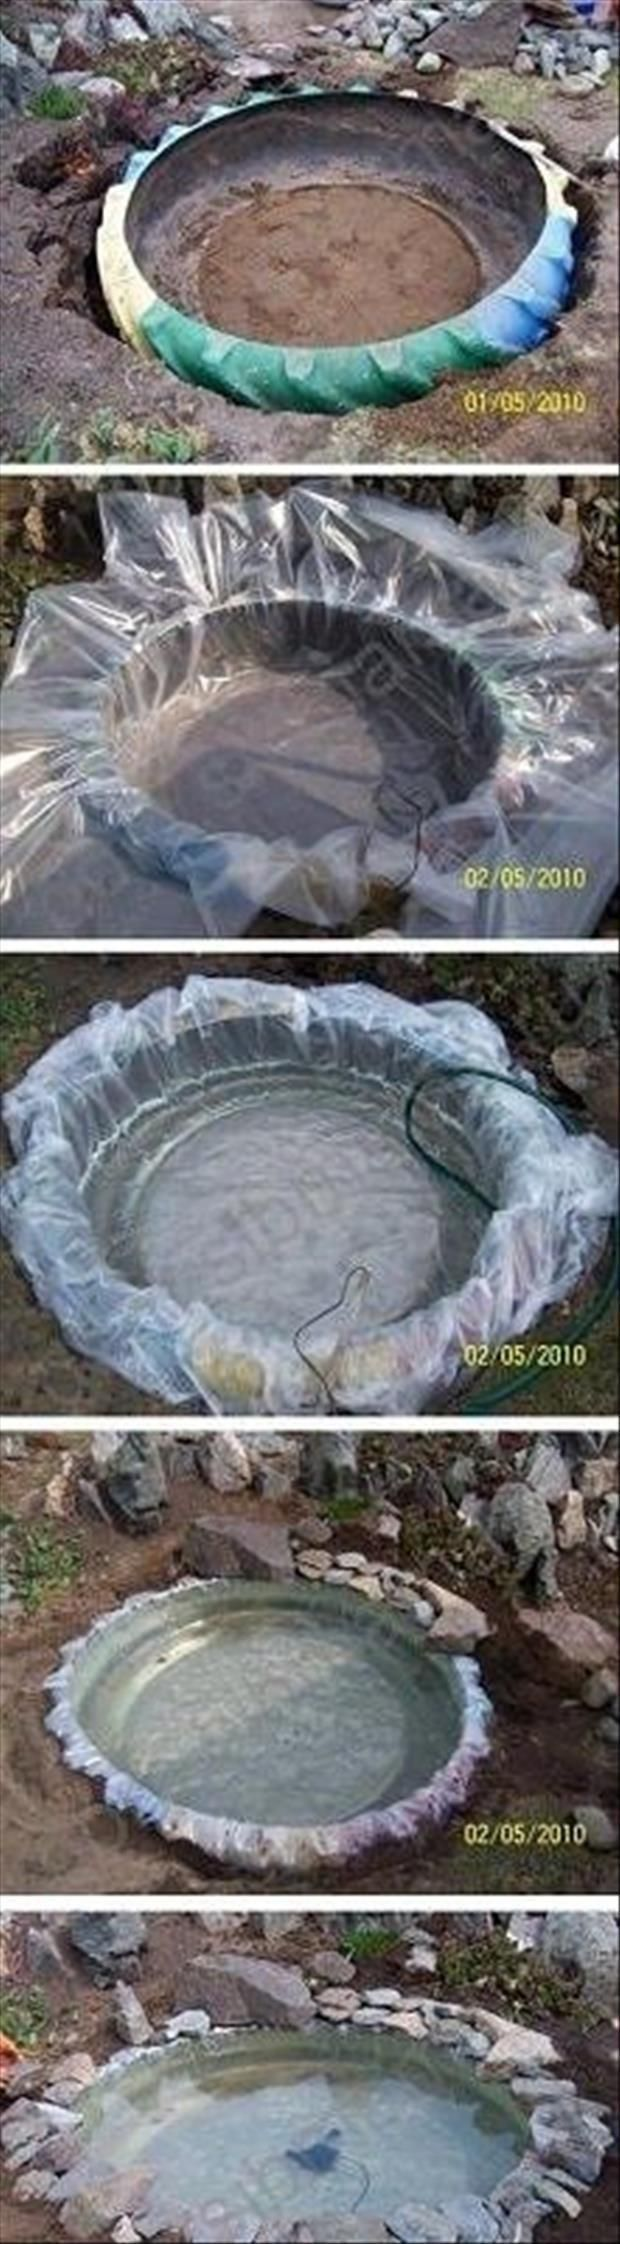 Great idea to use a large old tire to make a pond. I'm not sure I'd use an old tire, but many other items would apply.